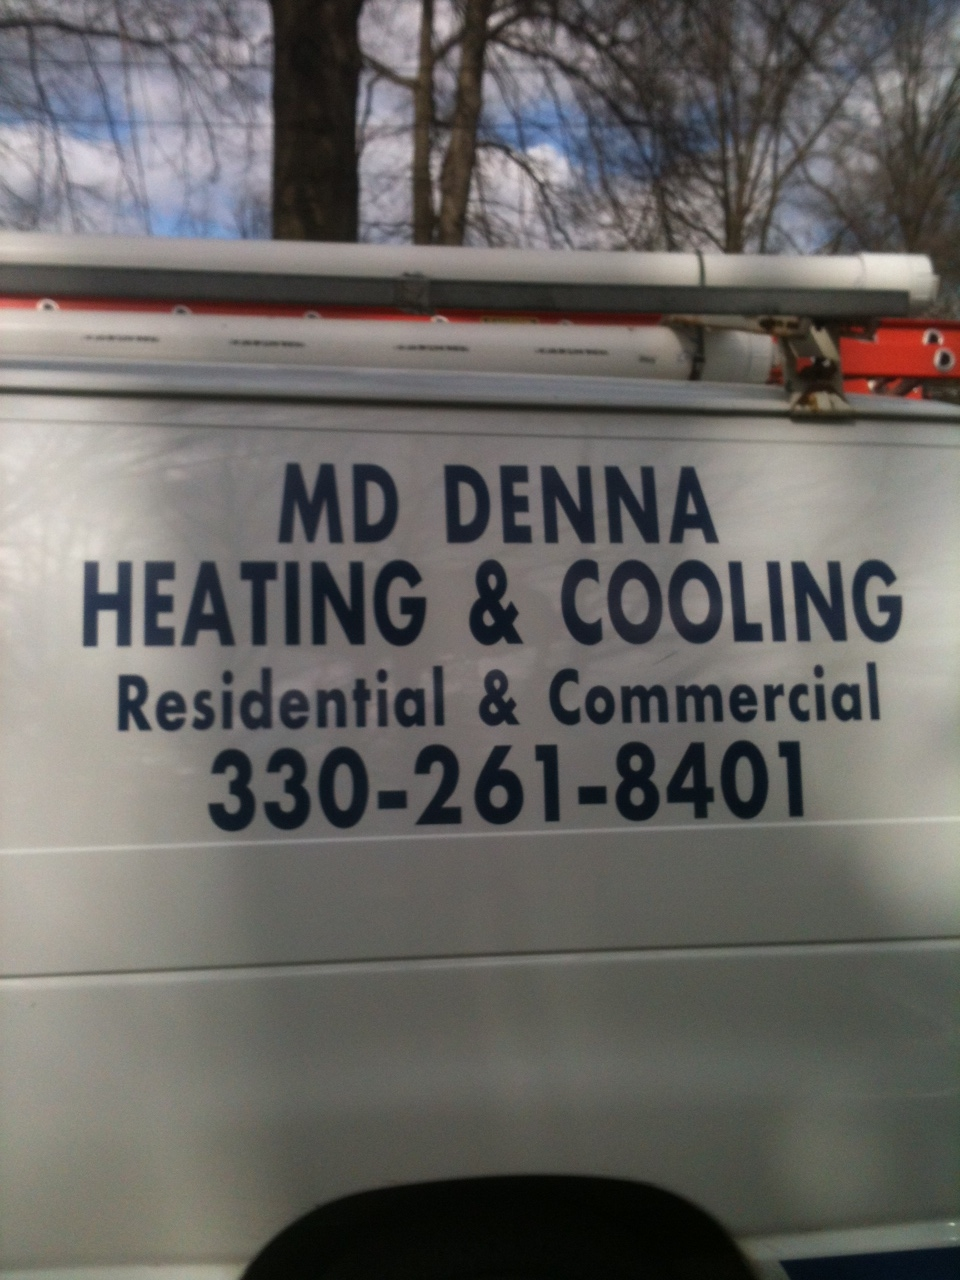 MD Denna Heating and Cooling Inc. - Warren, OH - Heating & Air Conditioning